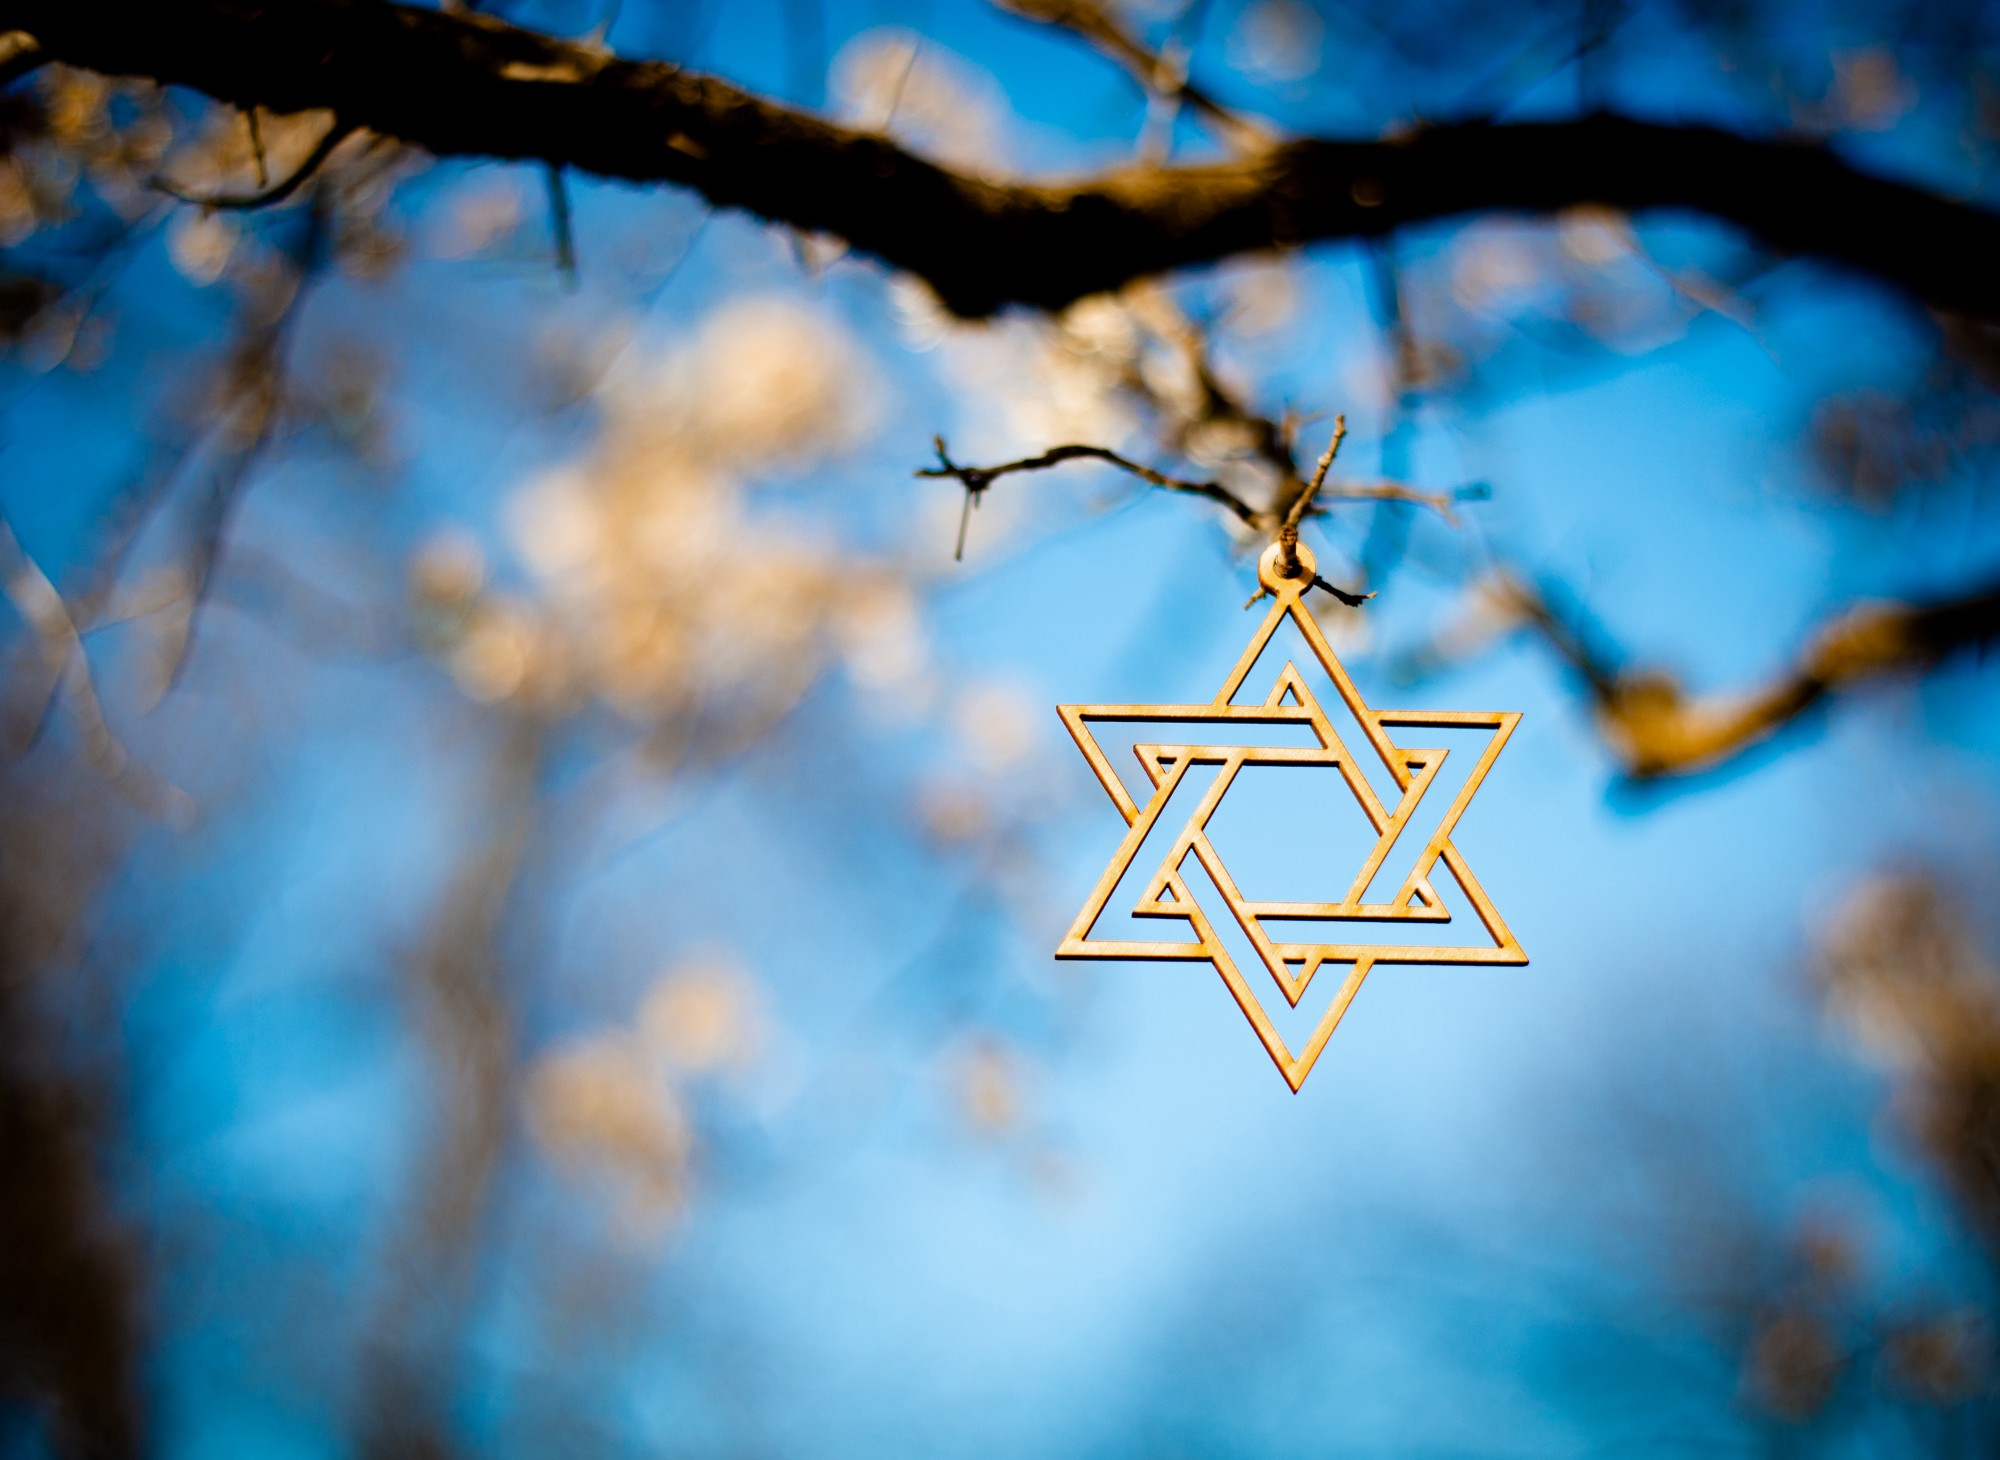 A Star of David hanging from a tree.